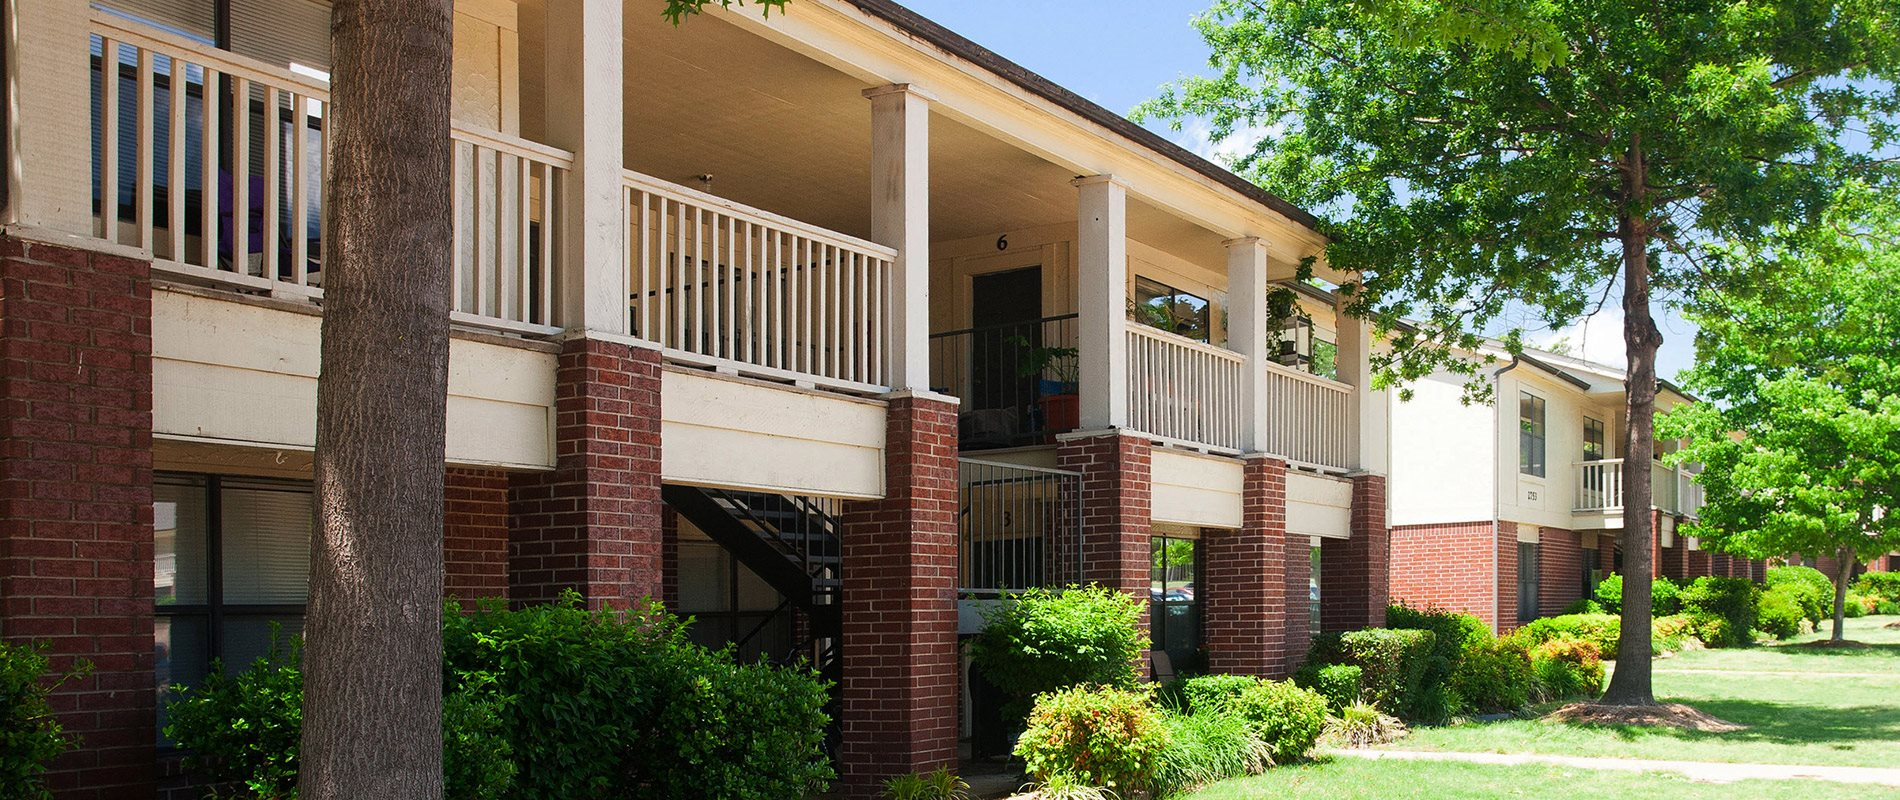 Fayetteville homepagegallery 1